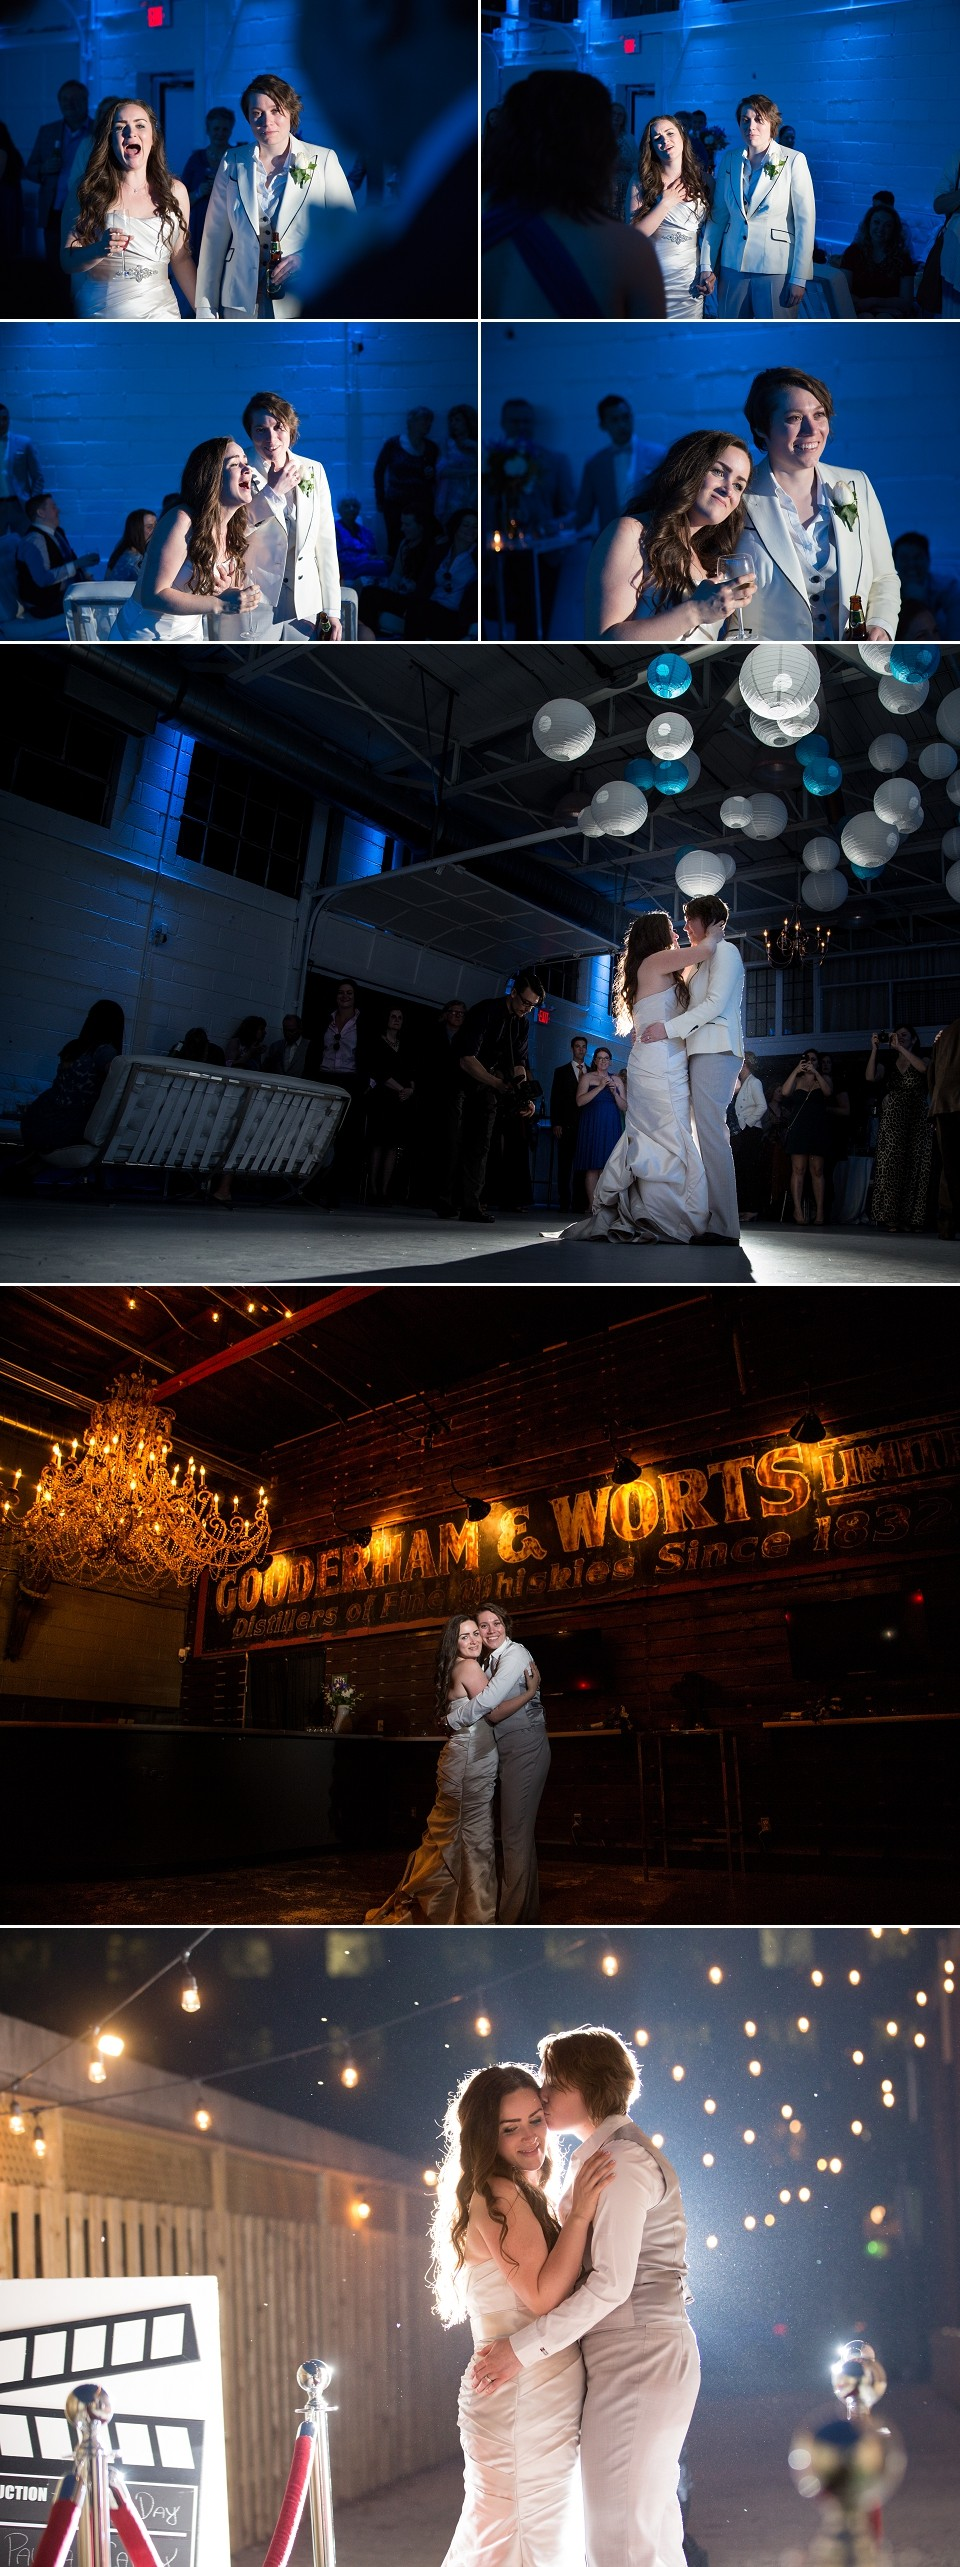 Wedding photography at the reception and night photos